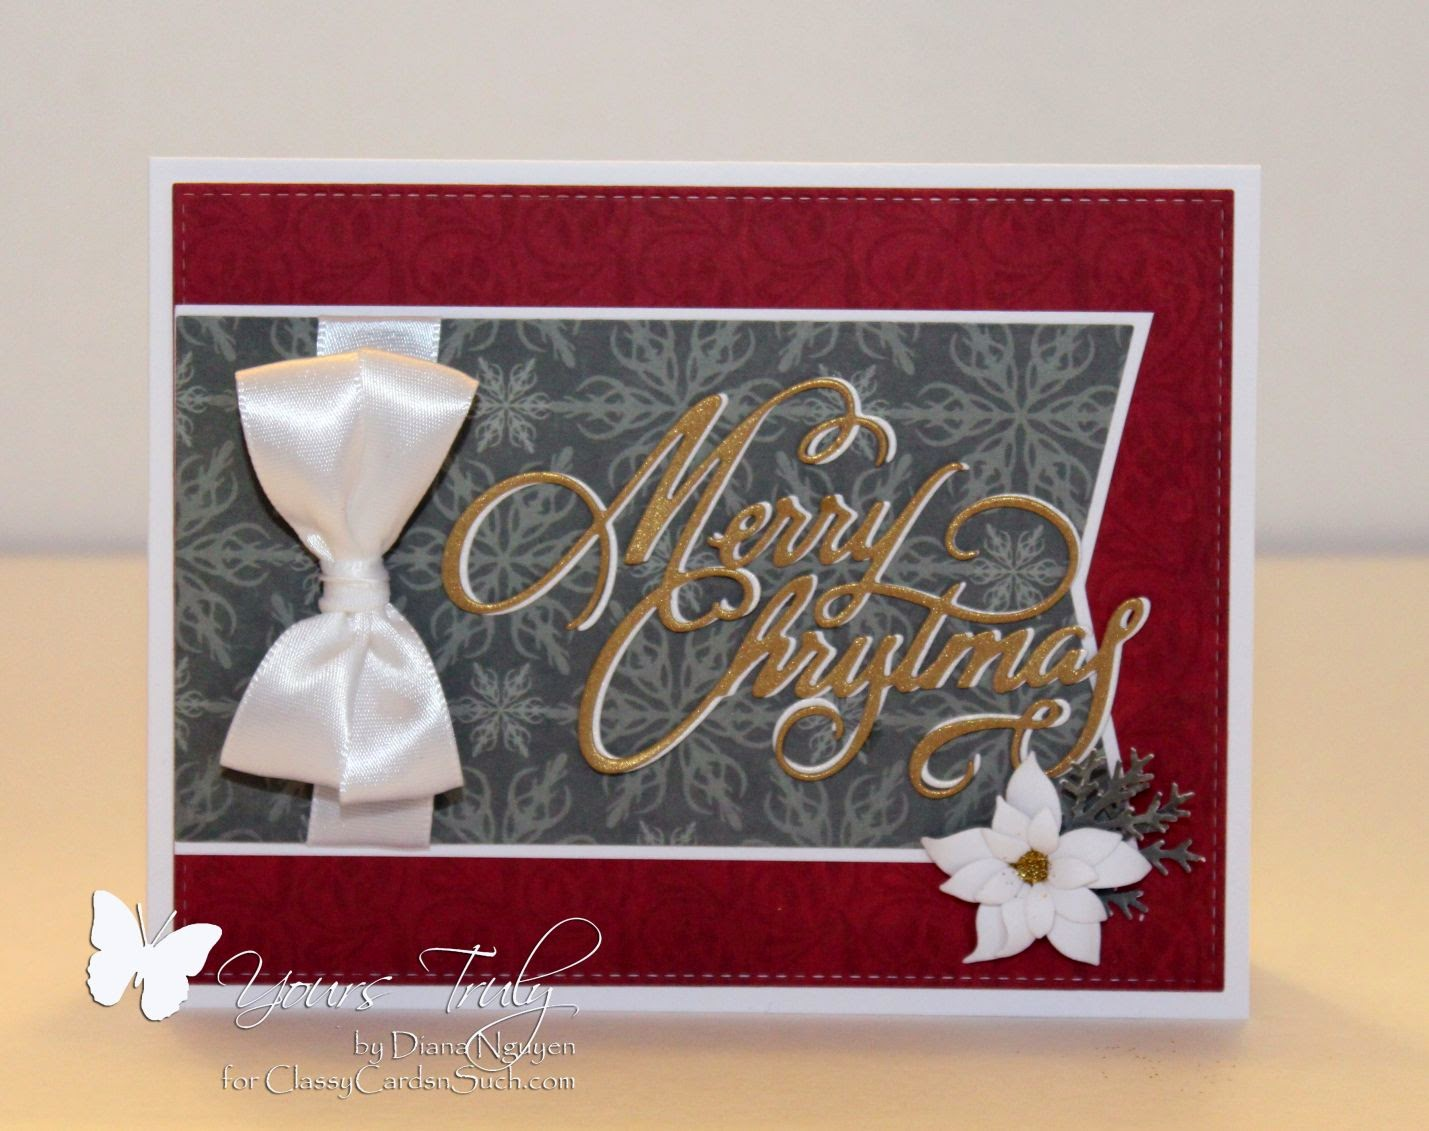 Diana Nguyen, Christmas, card, Impression Obsession, Poppy Stamps, poinsettia